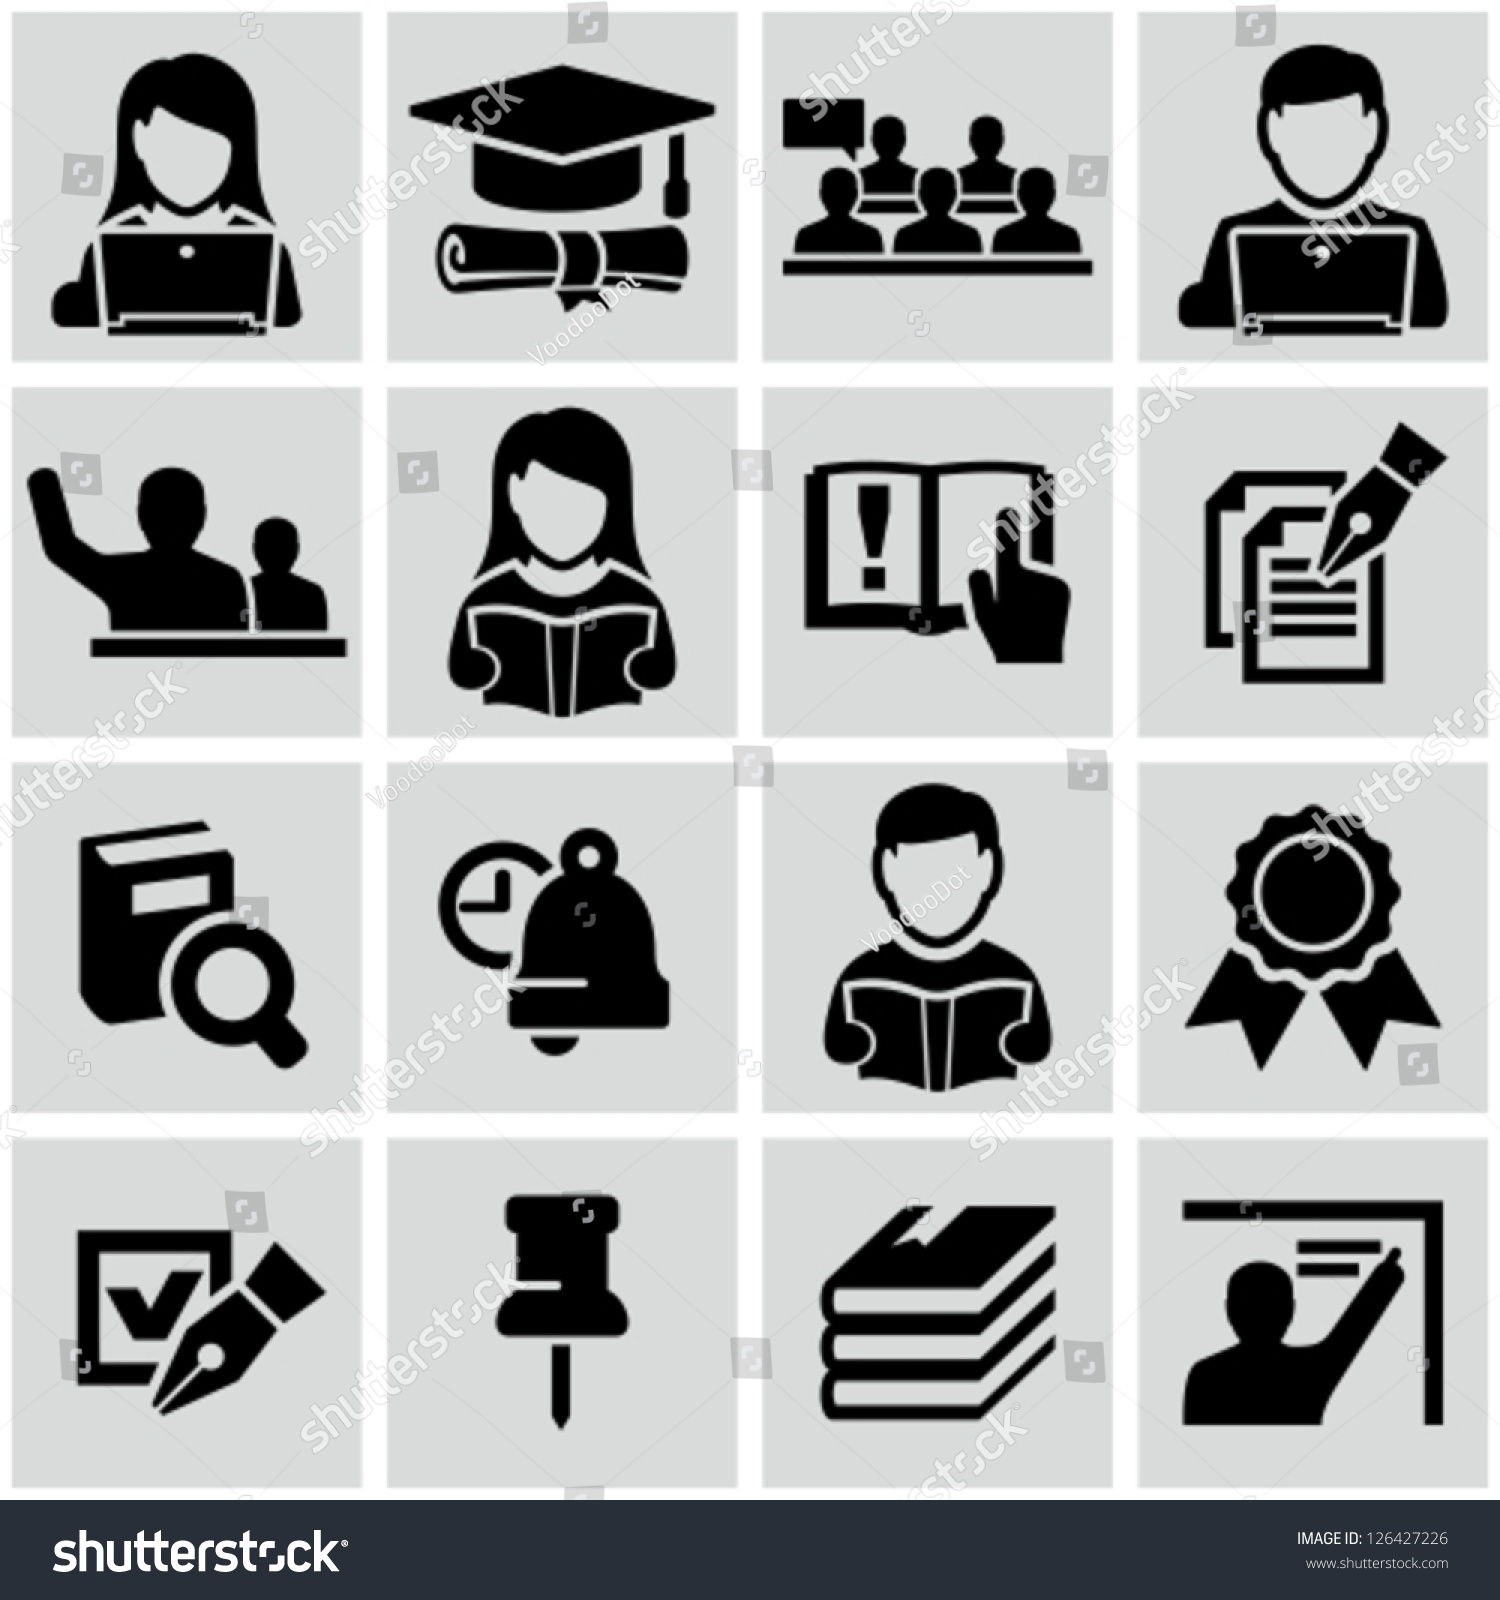 Higher Education Symbols Clip Art